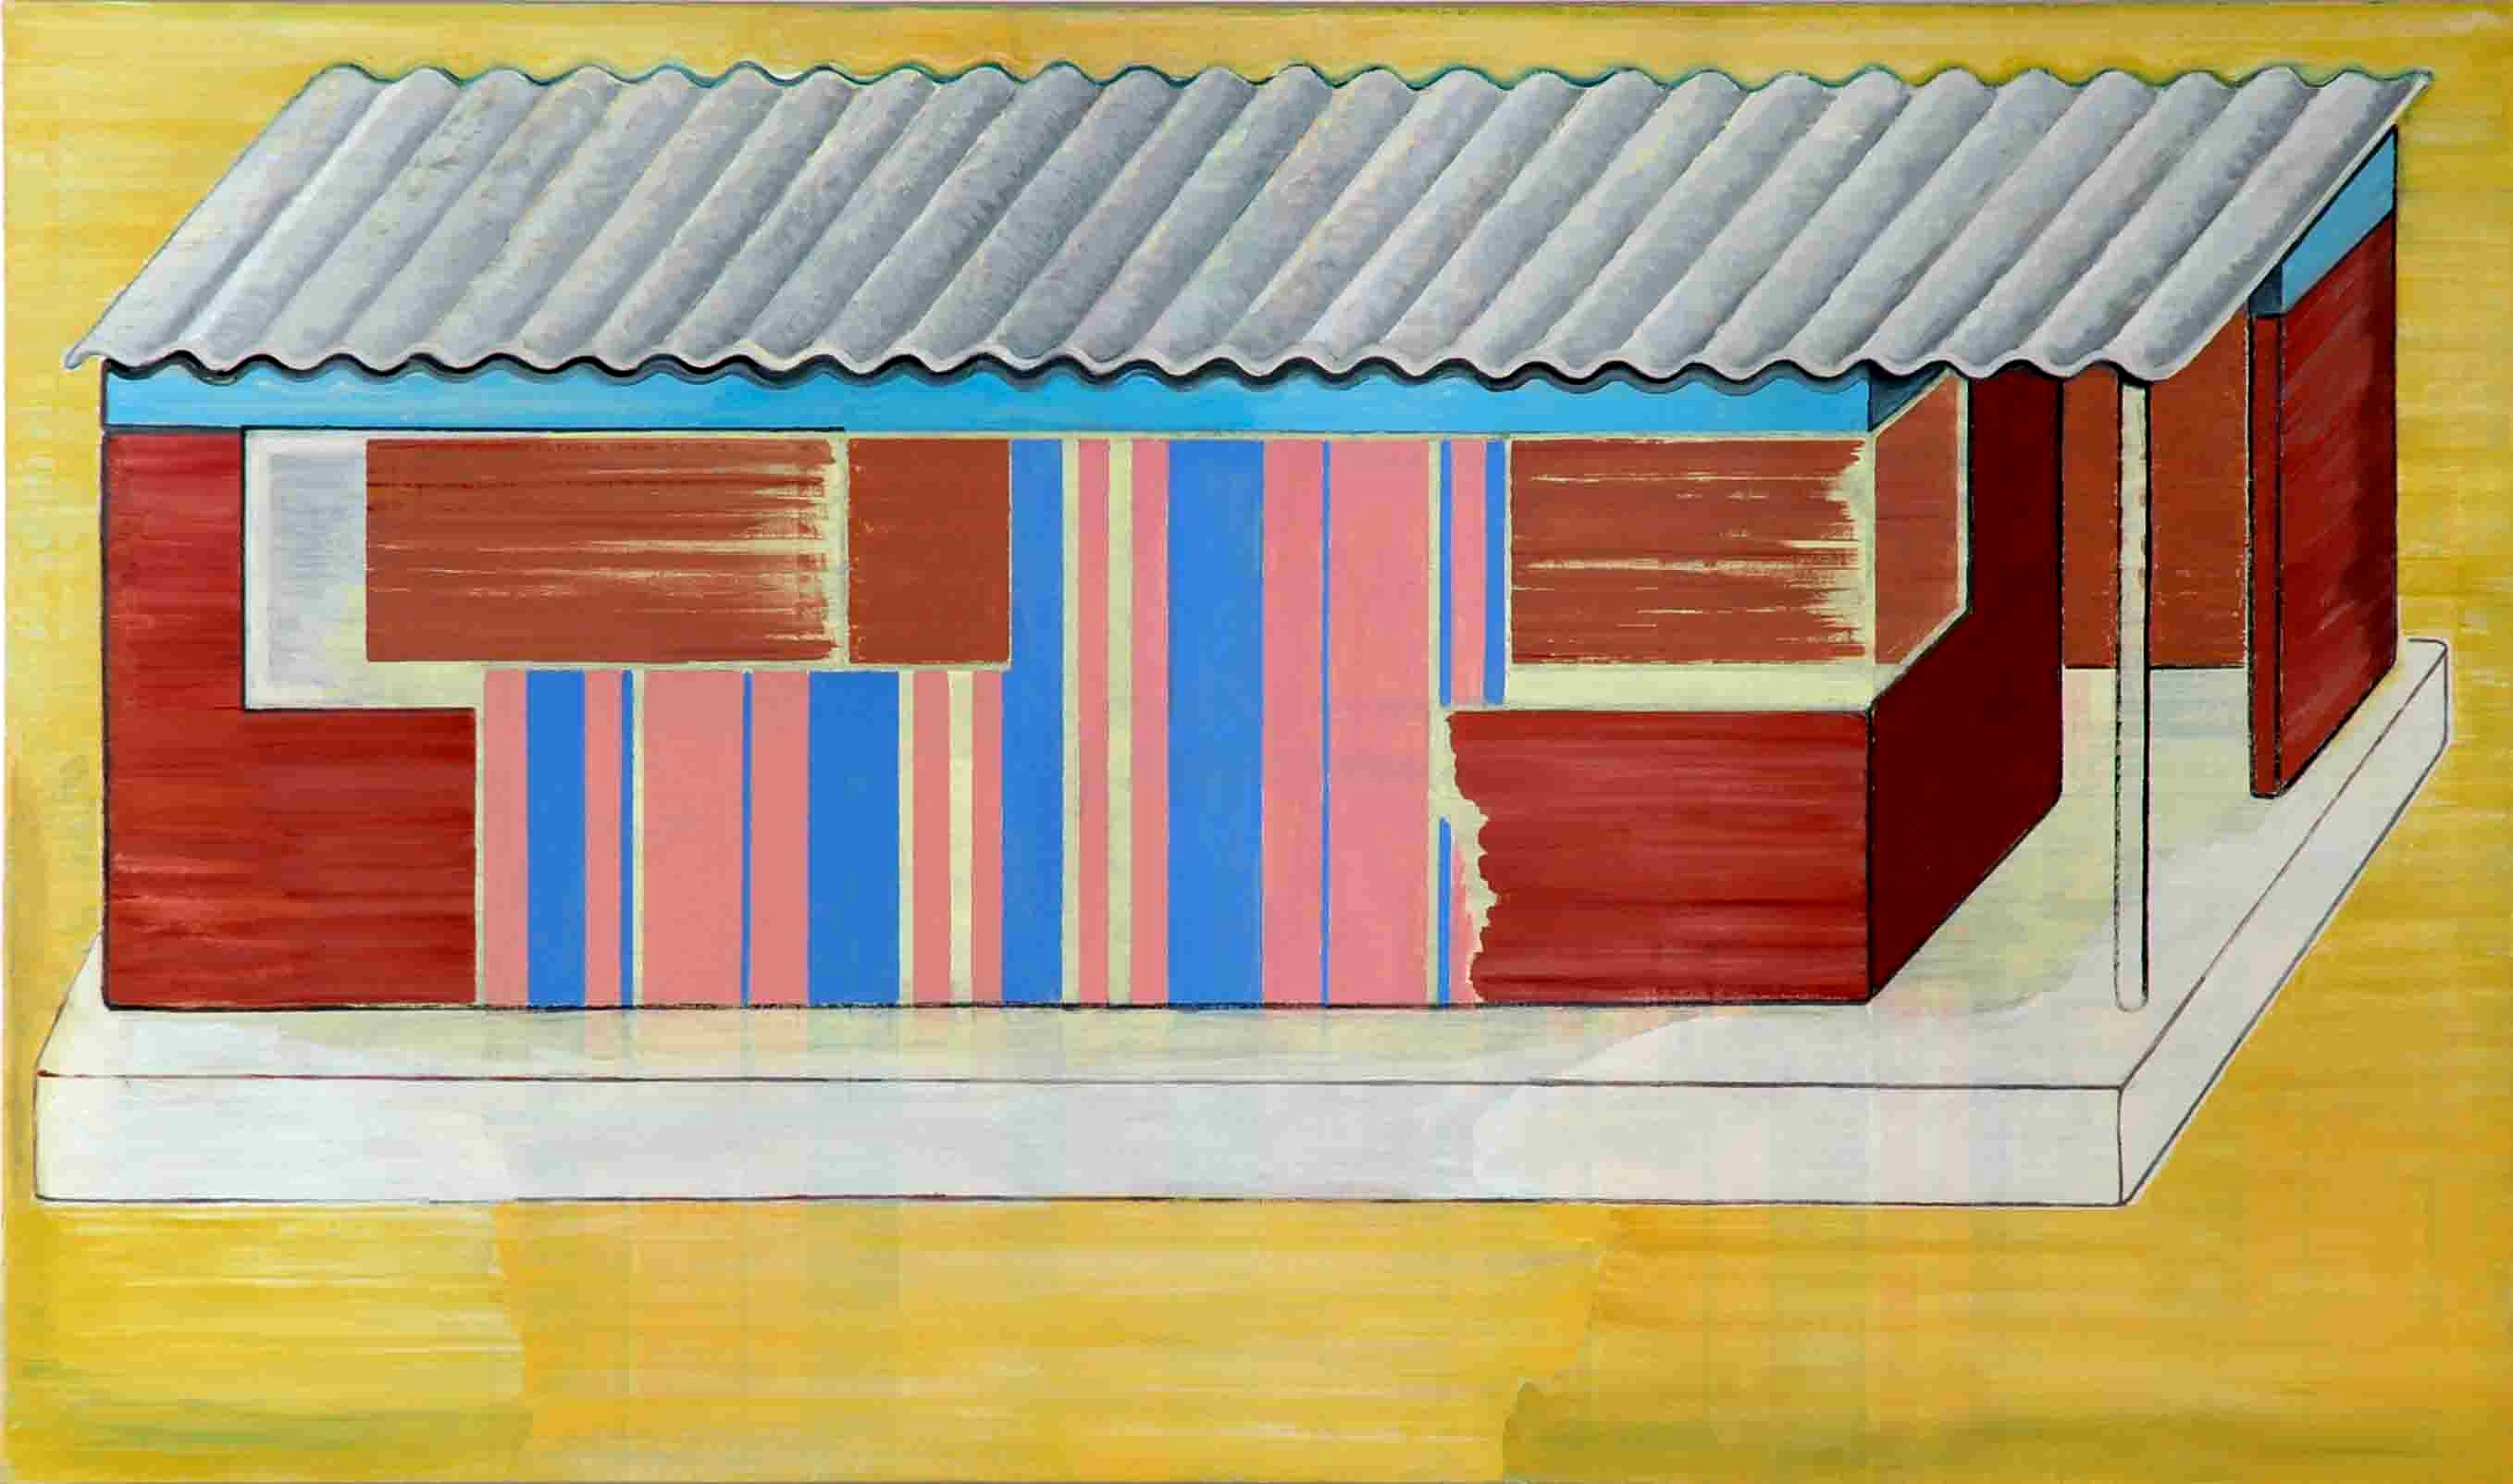 African House, oil on canvas, 140 x 220 cm, 2005